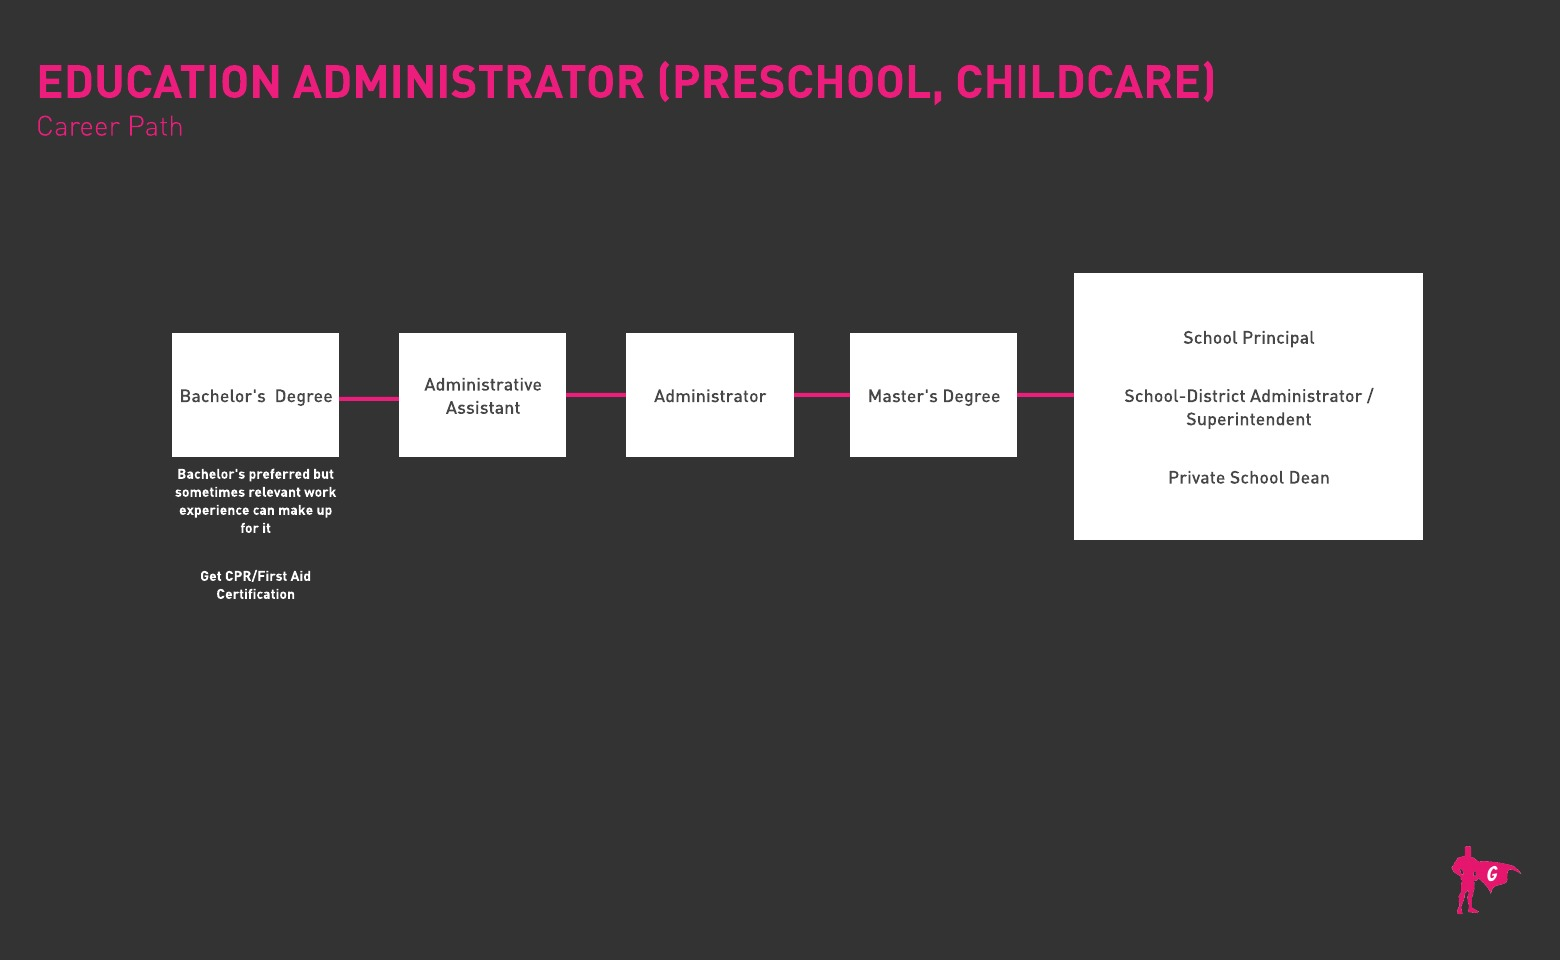 Preschool and Childcare Education Administrator Gladeo Roadmap